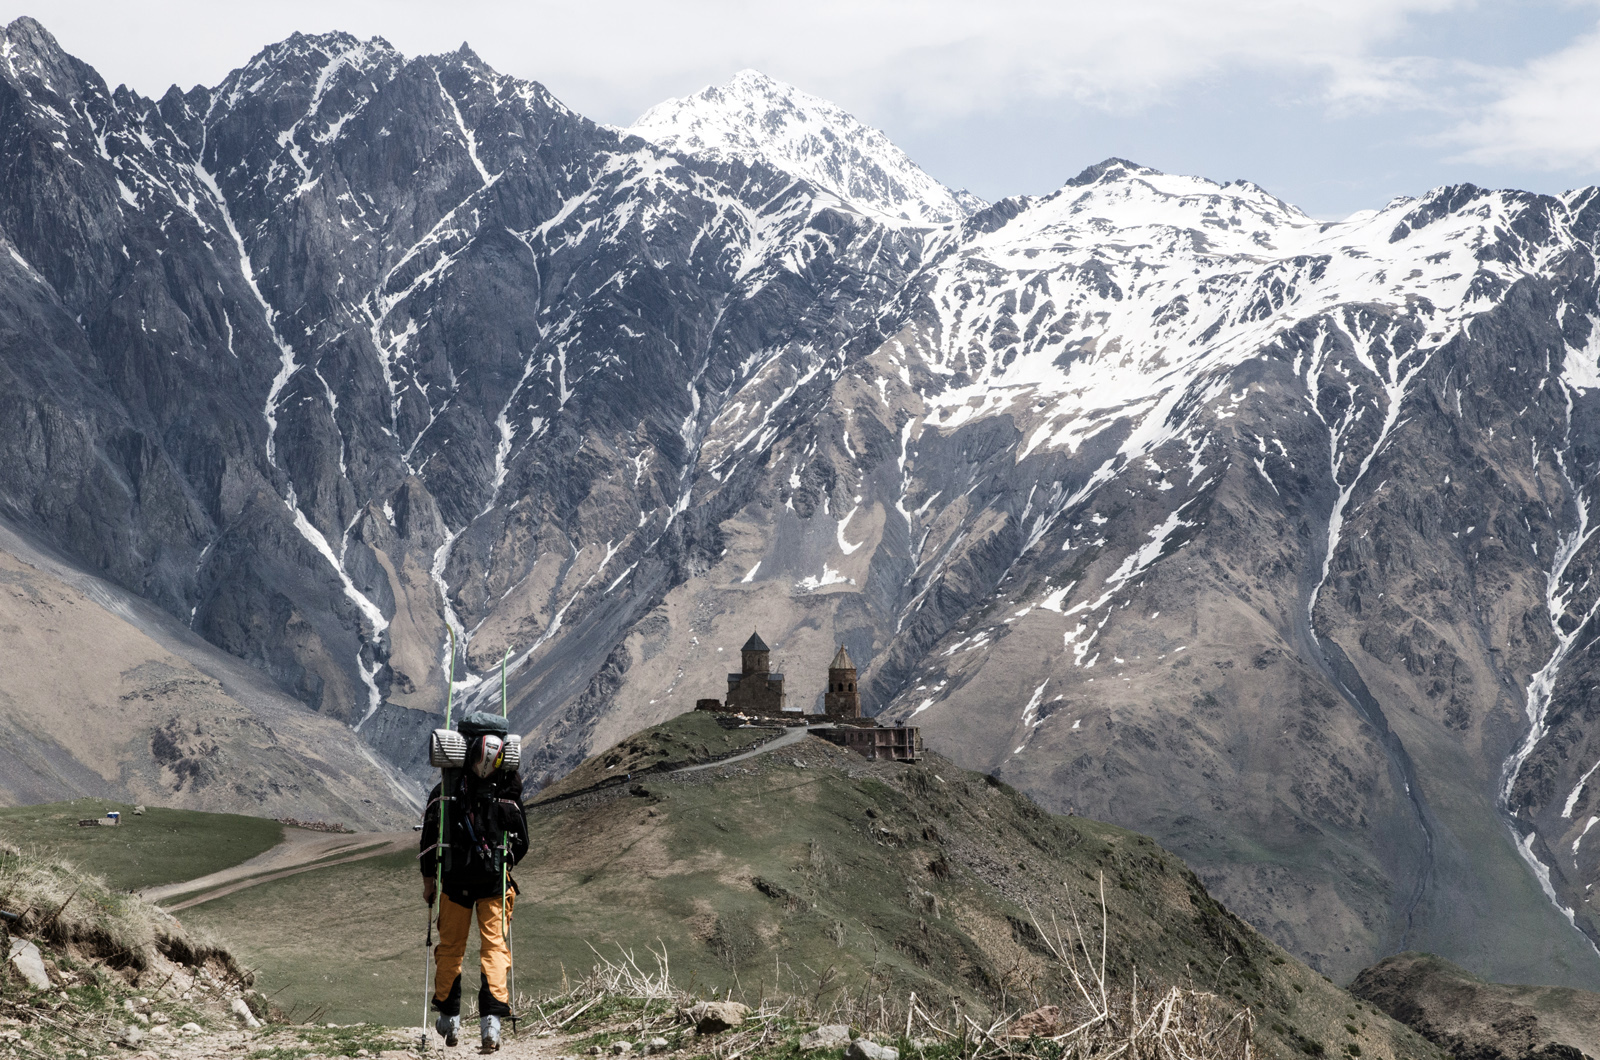 """Returning to the valley on our fourth day on Mount Kazbek. ""This photo summarizes why we go on ski expeditions. Strolling down ancient mountain roads in our ski boots, exhausted from having skied a line that no one has skied before."" TREVOR HUNT PHOTO"